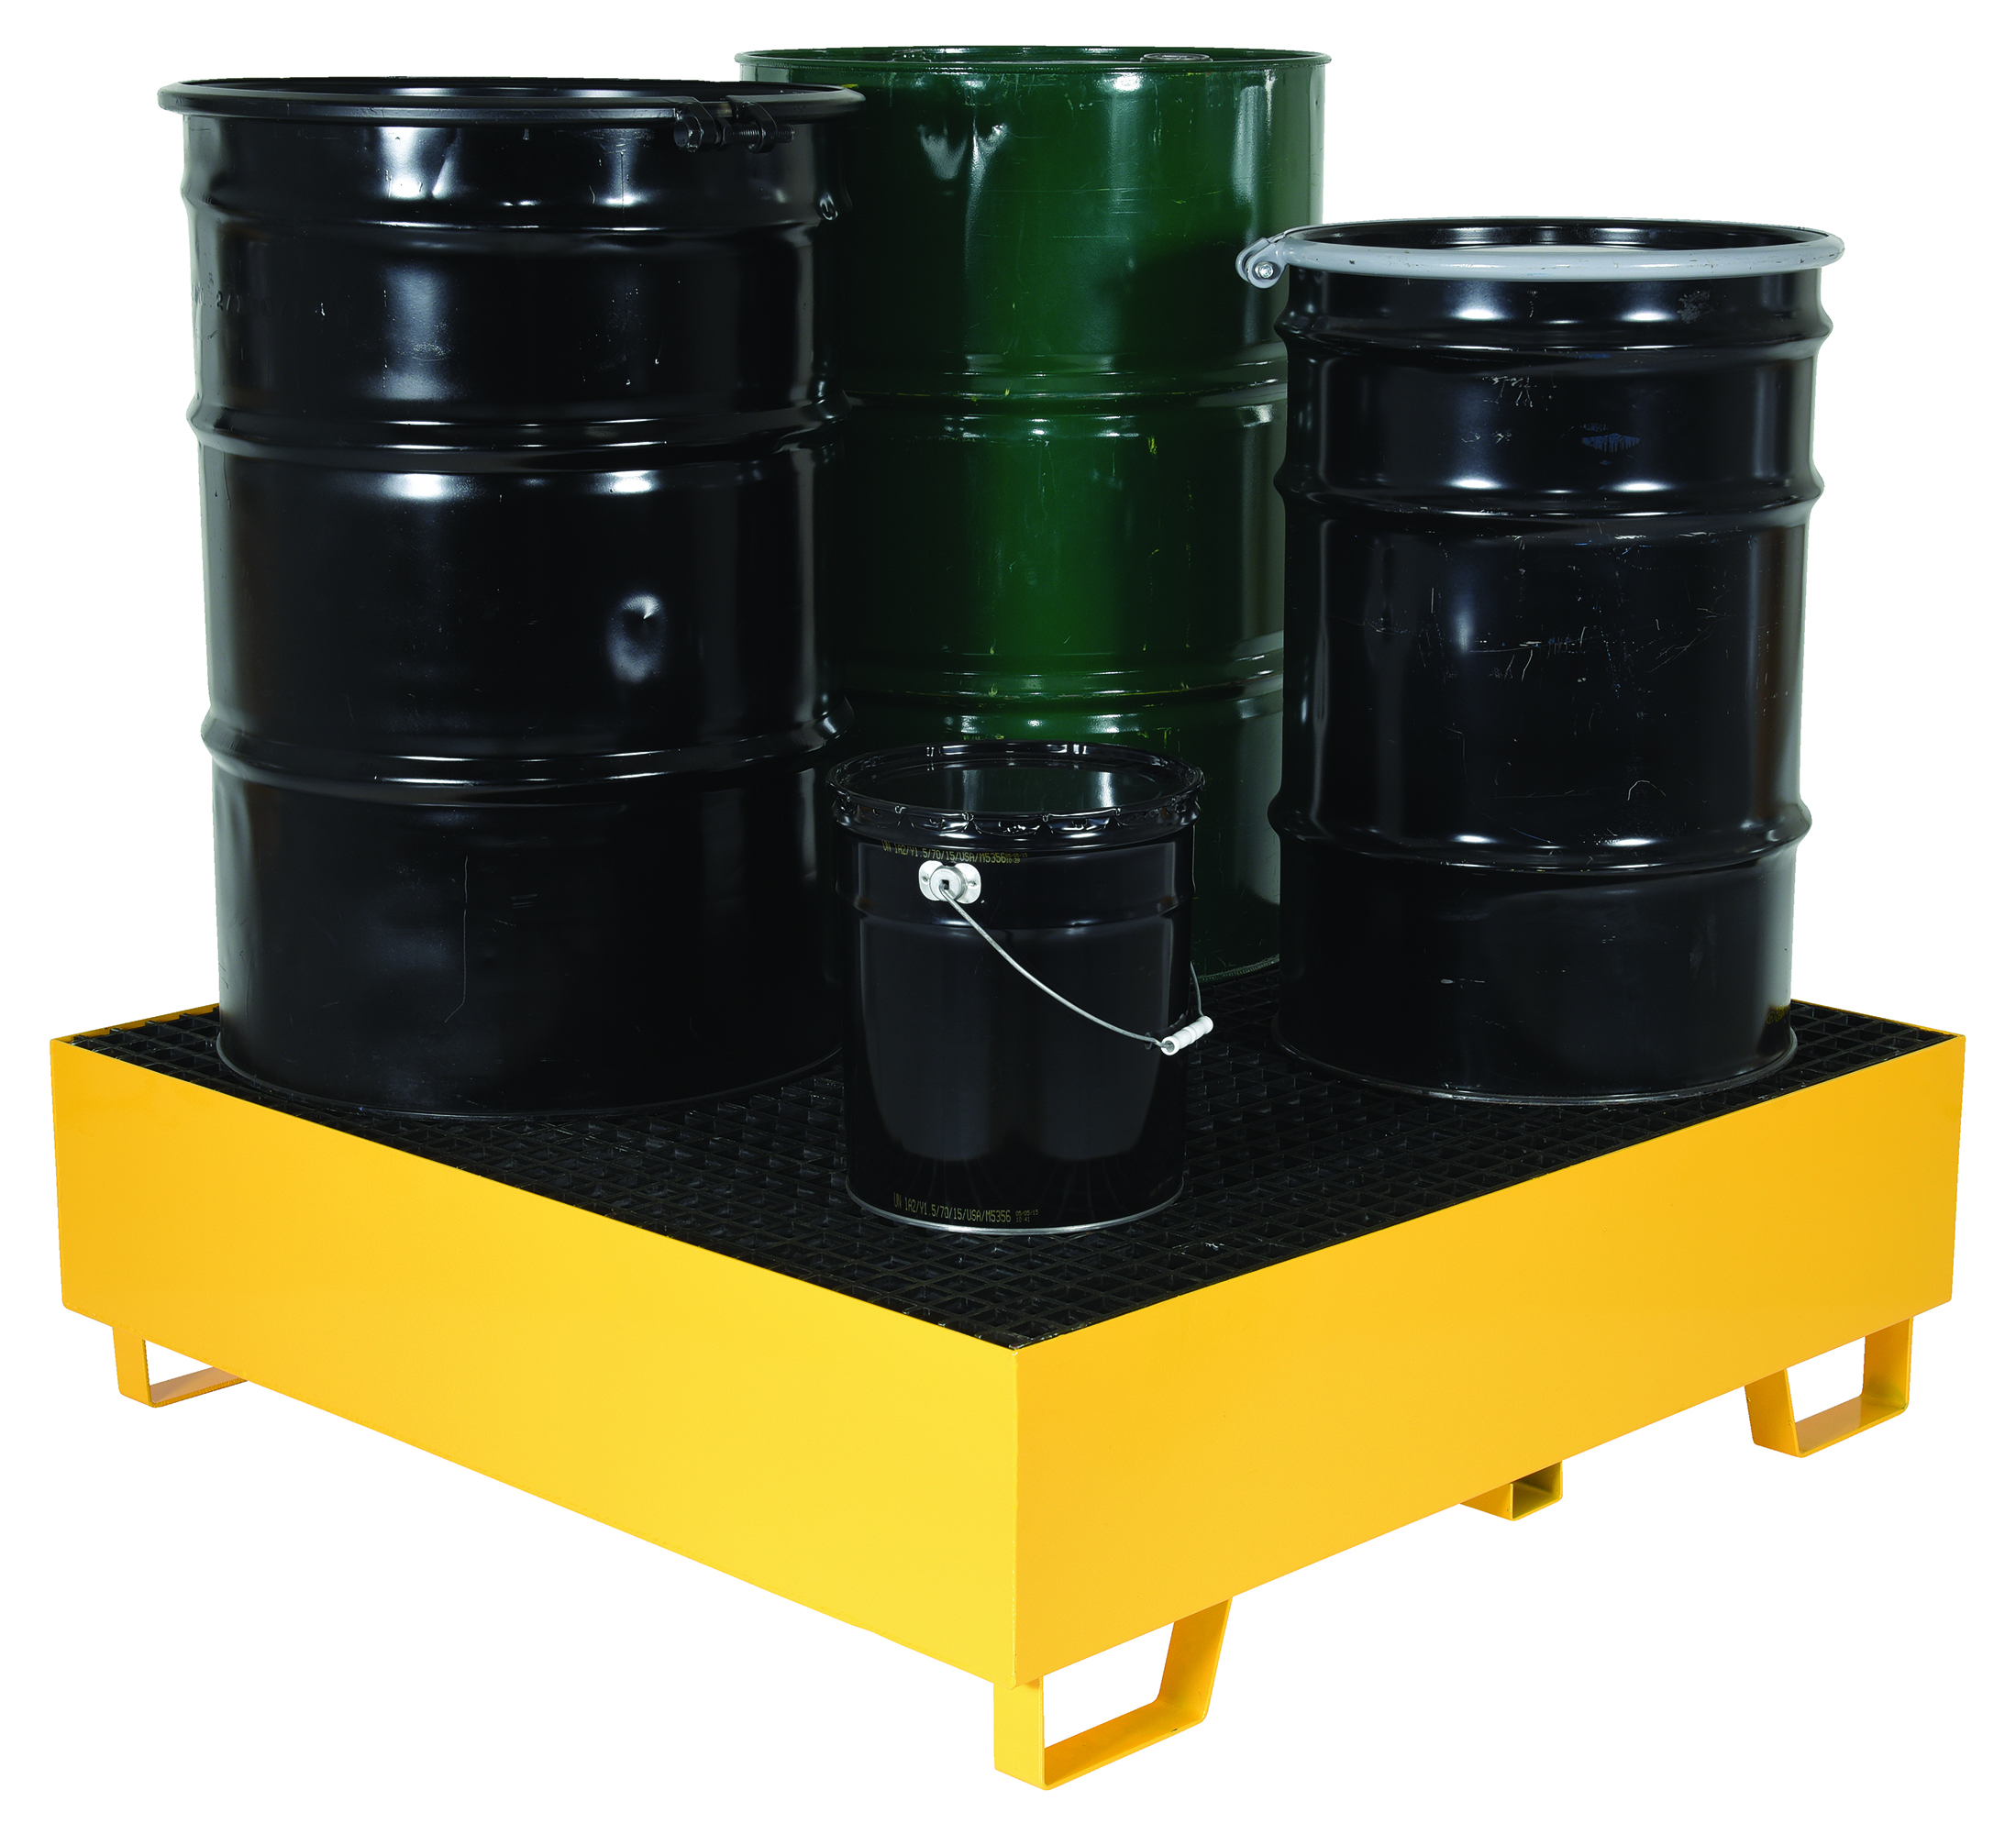 Vestil VRSB-YL-4 Drum Spill Containment Basin